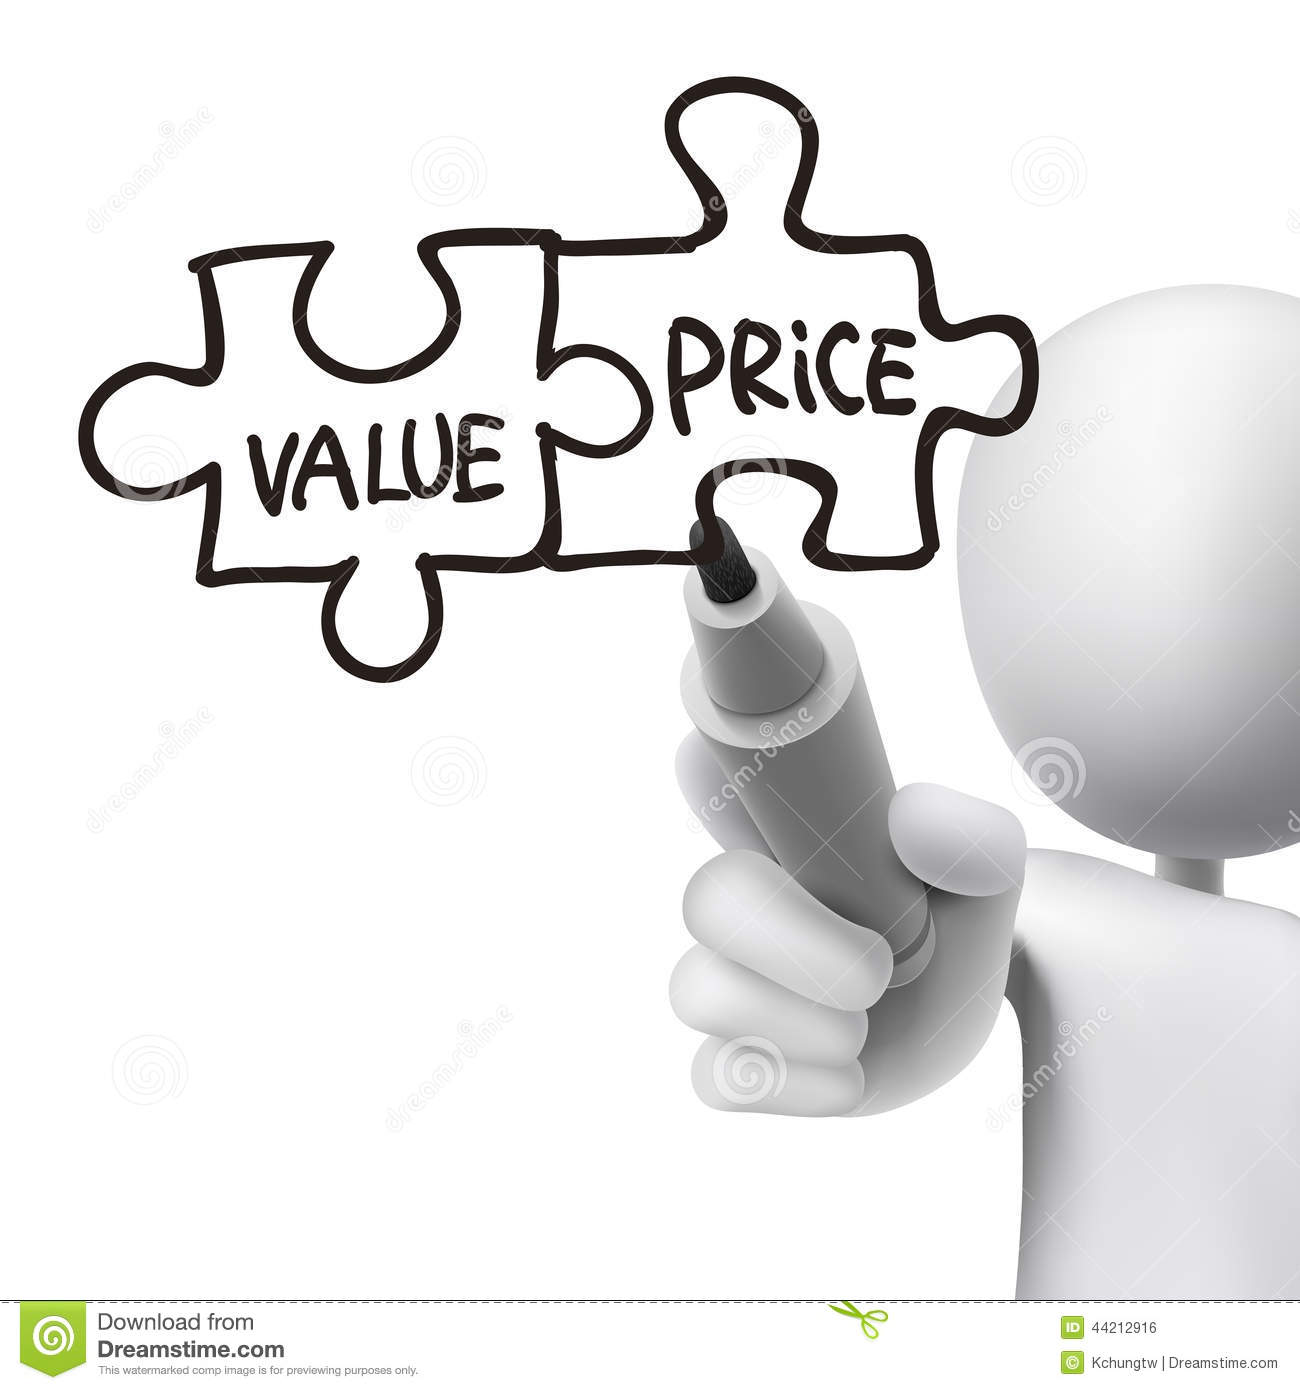 Value And Price Words Written By 3d Man Stock Vector - Image: 44212916